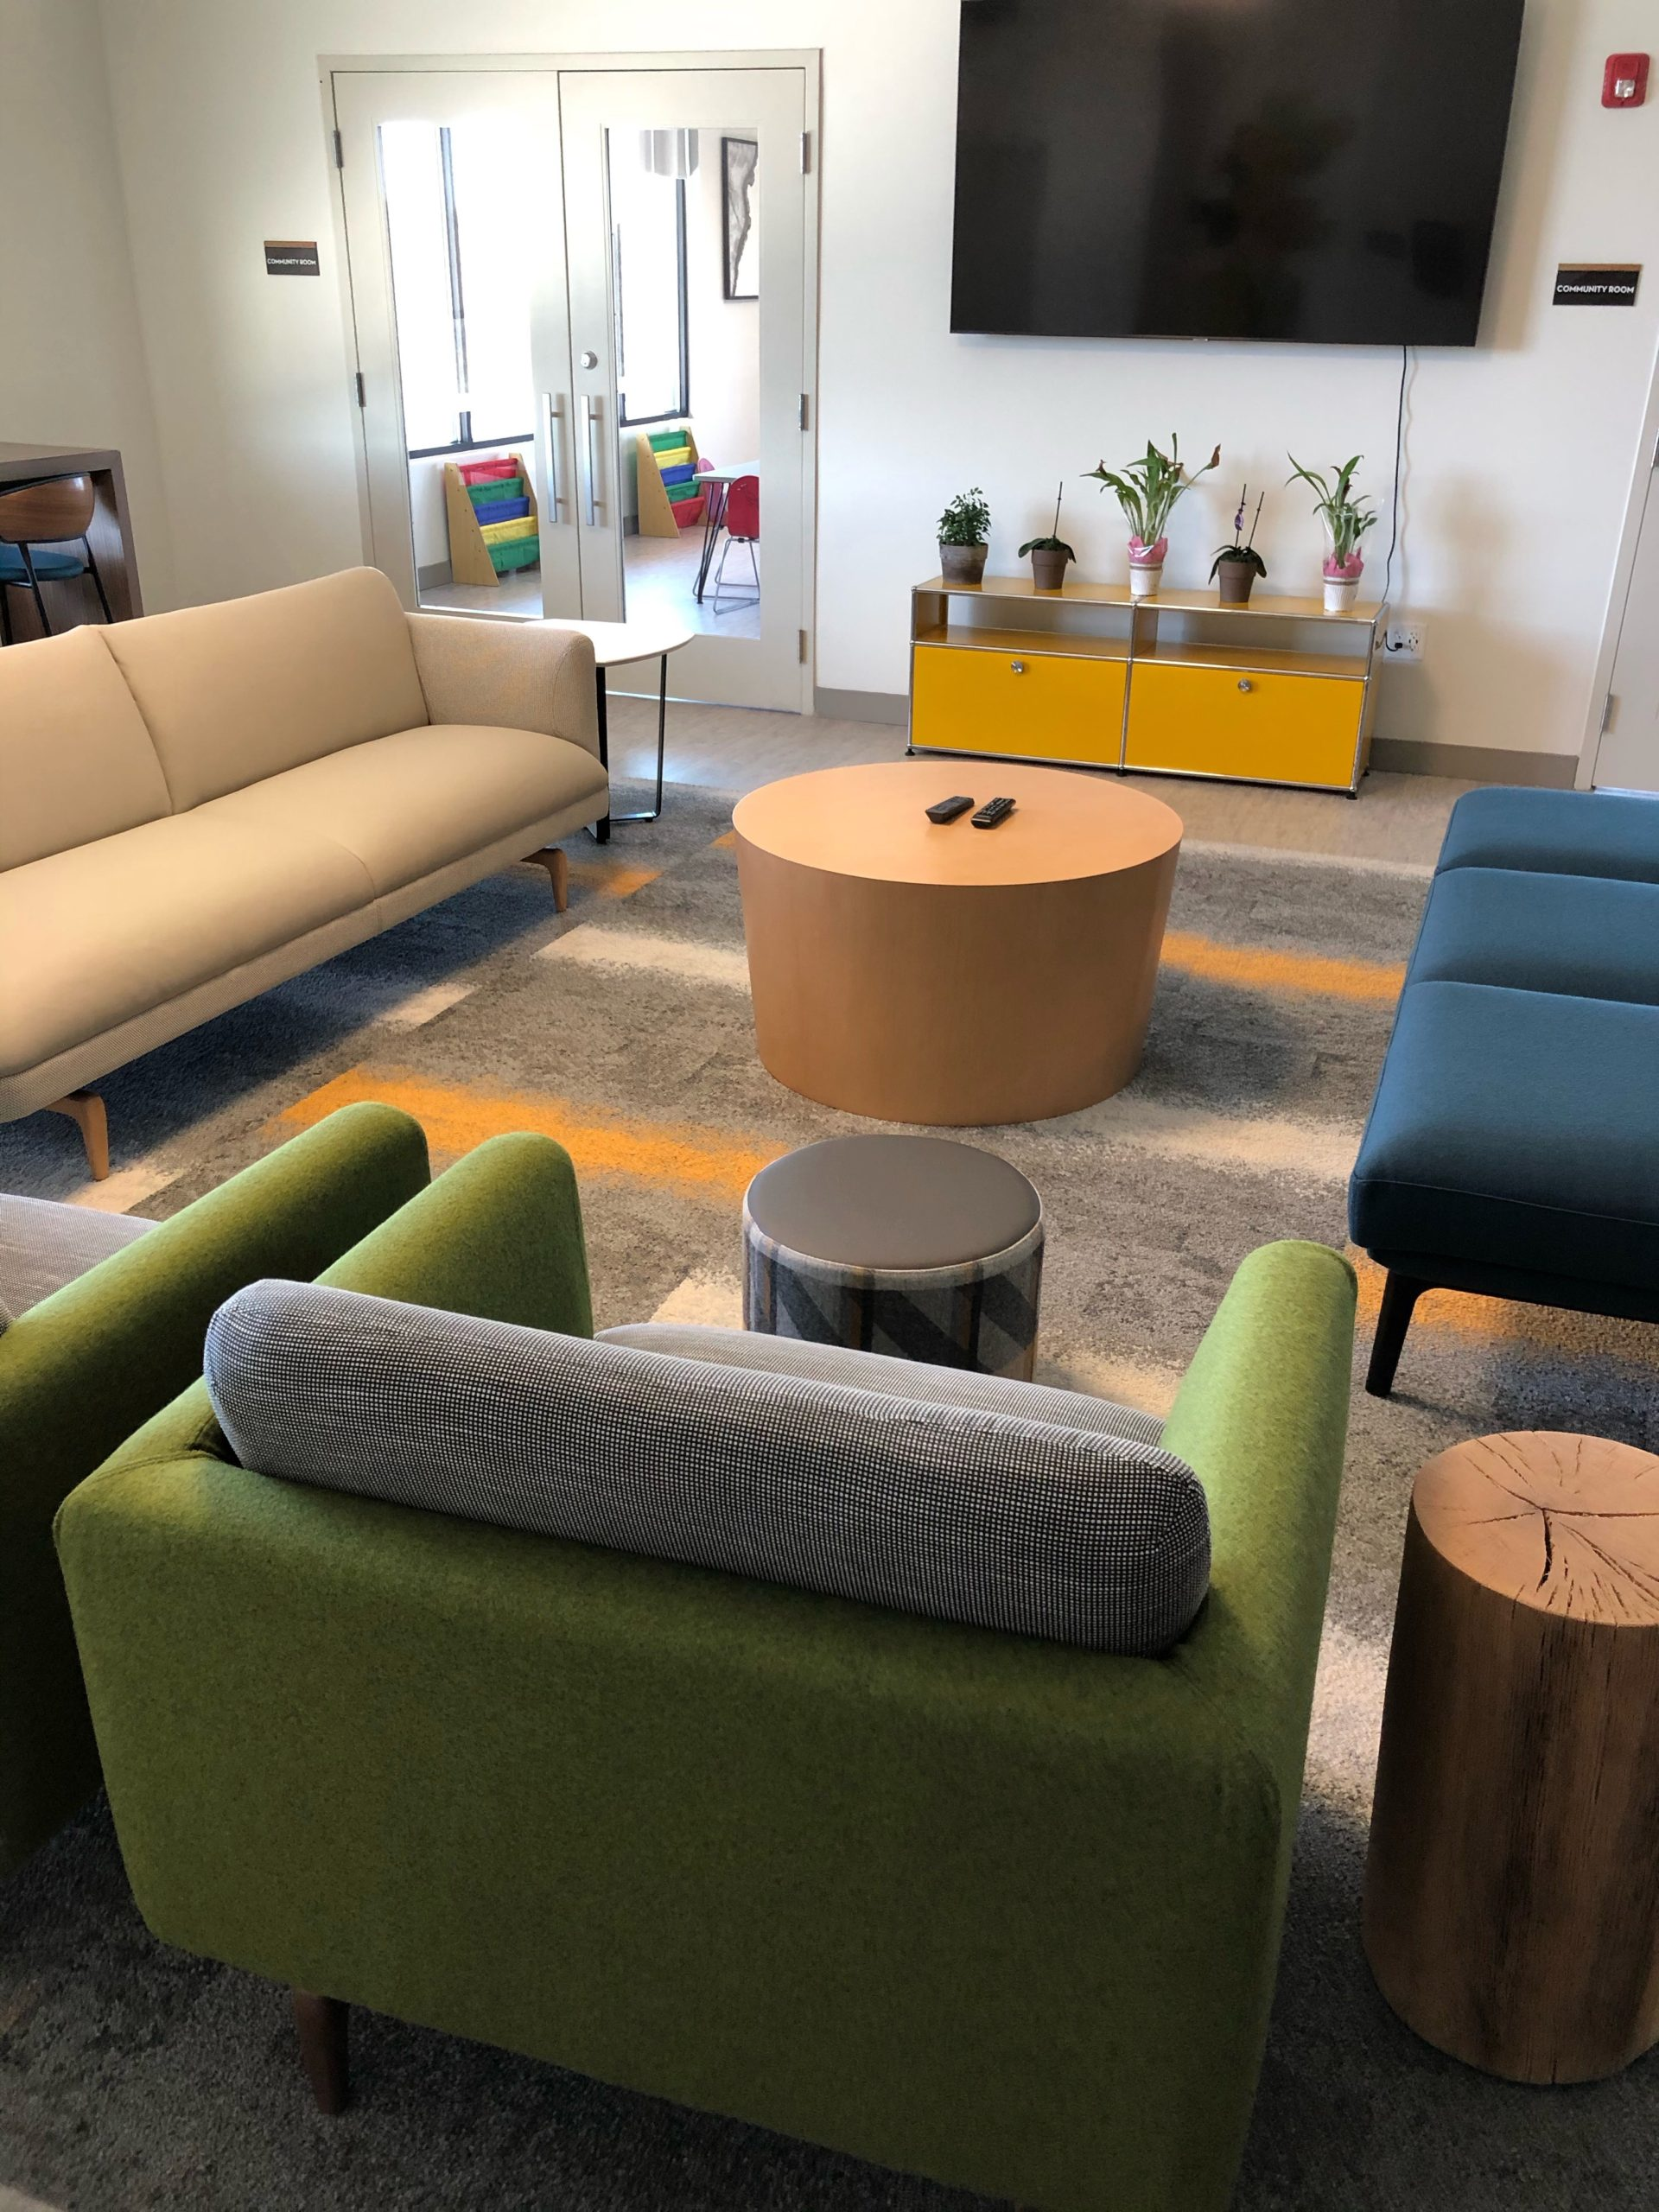 The lounge on the top floor